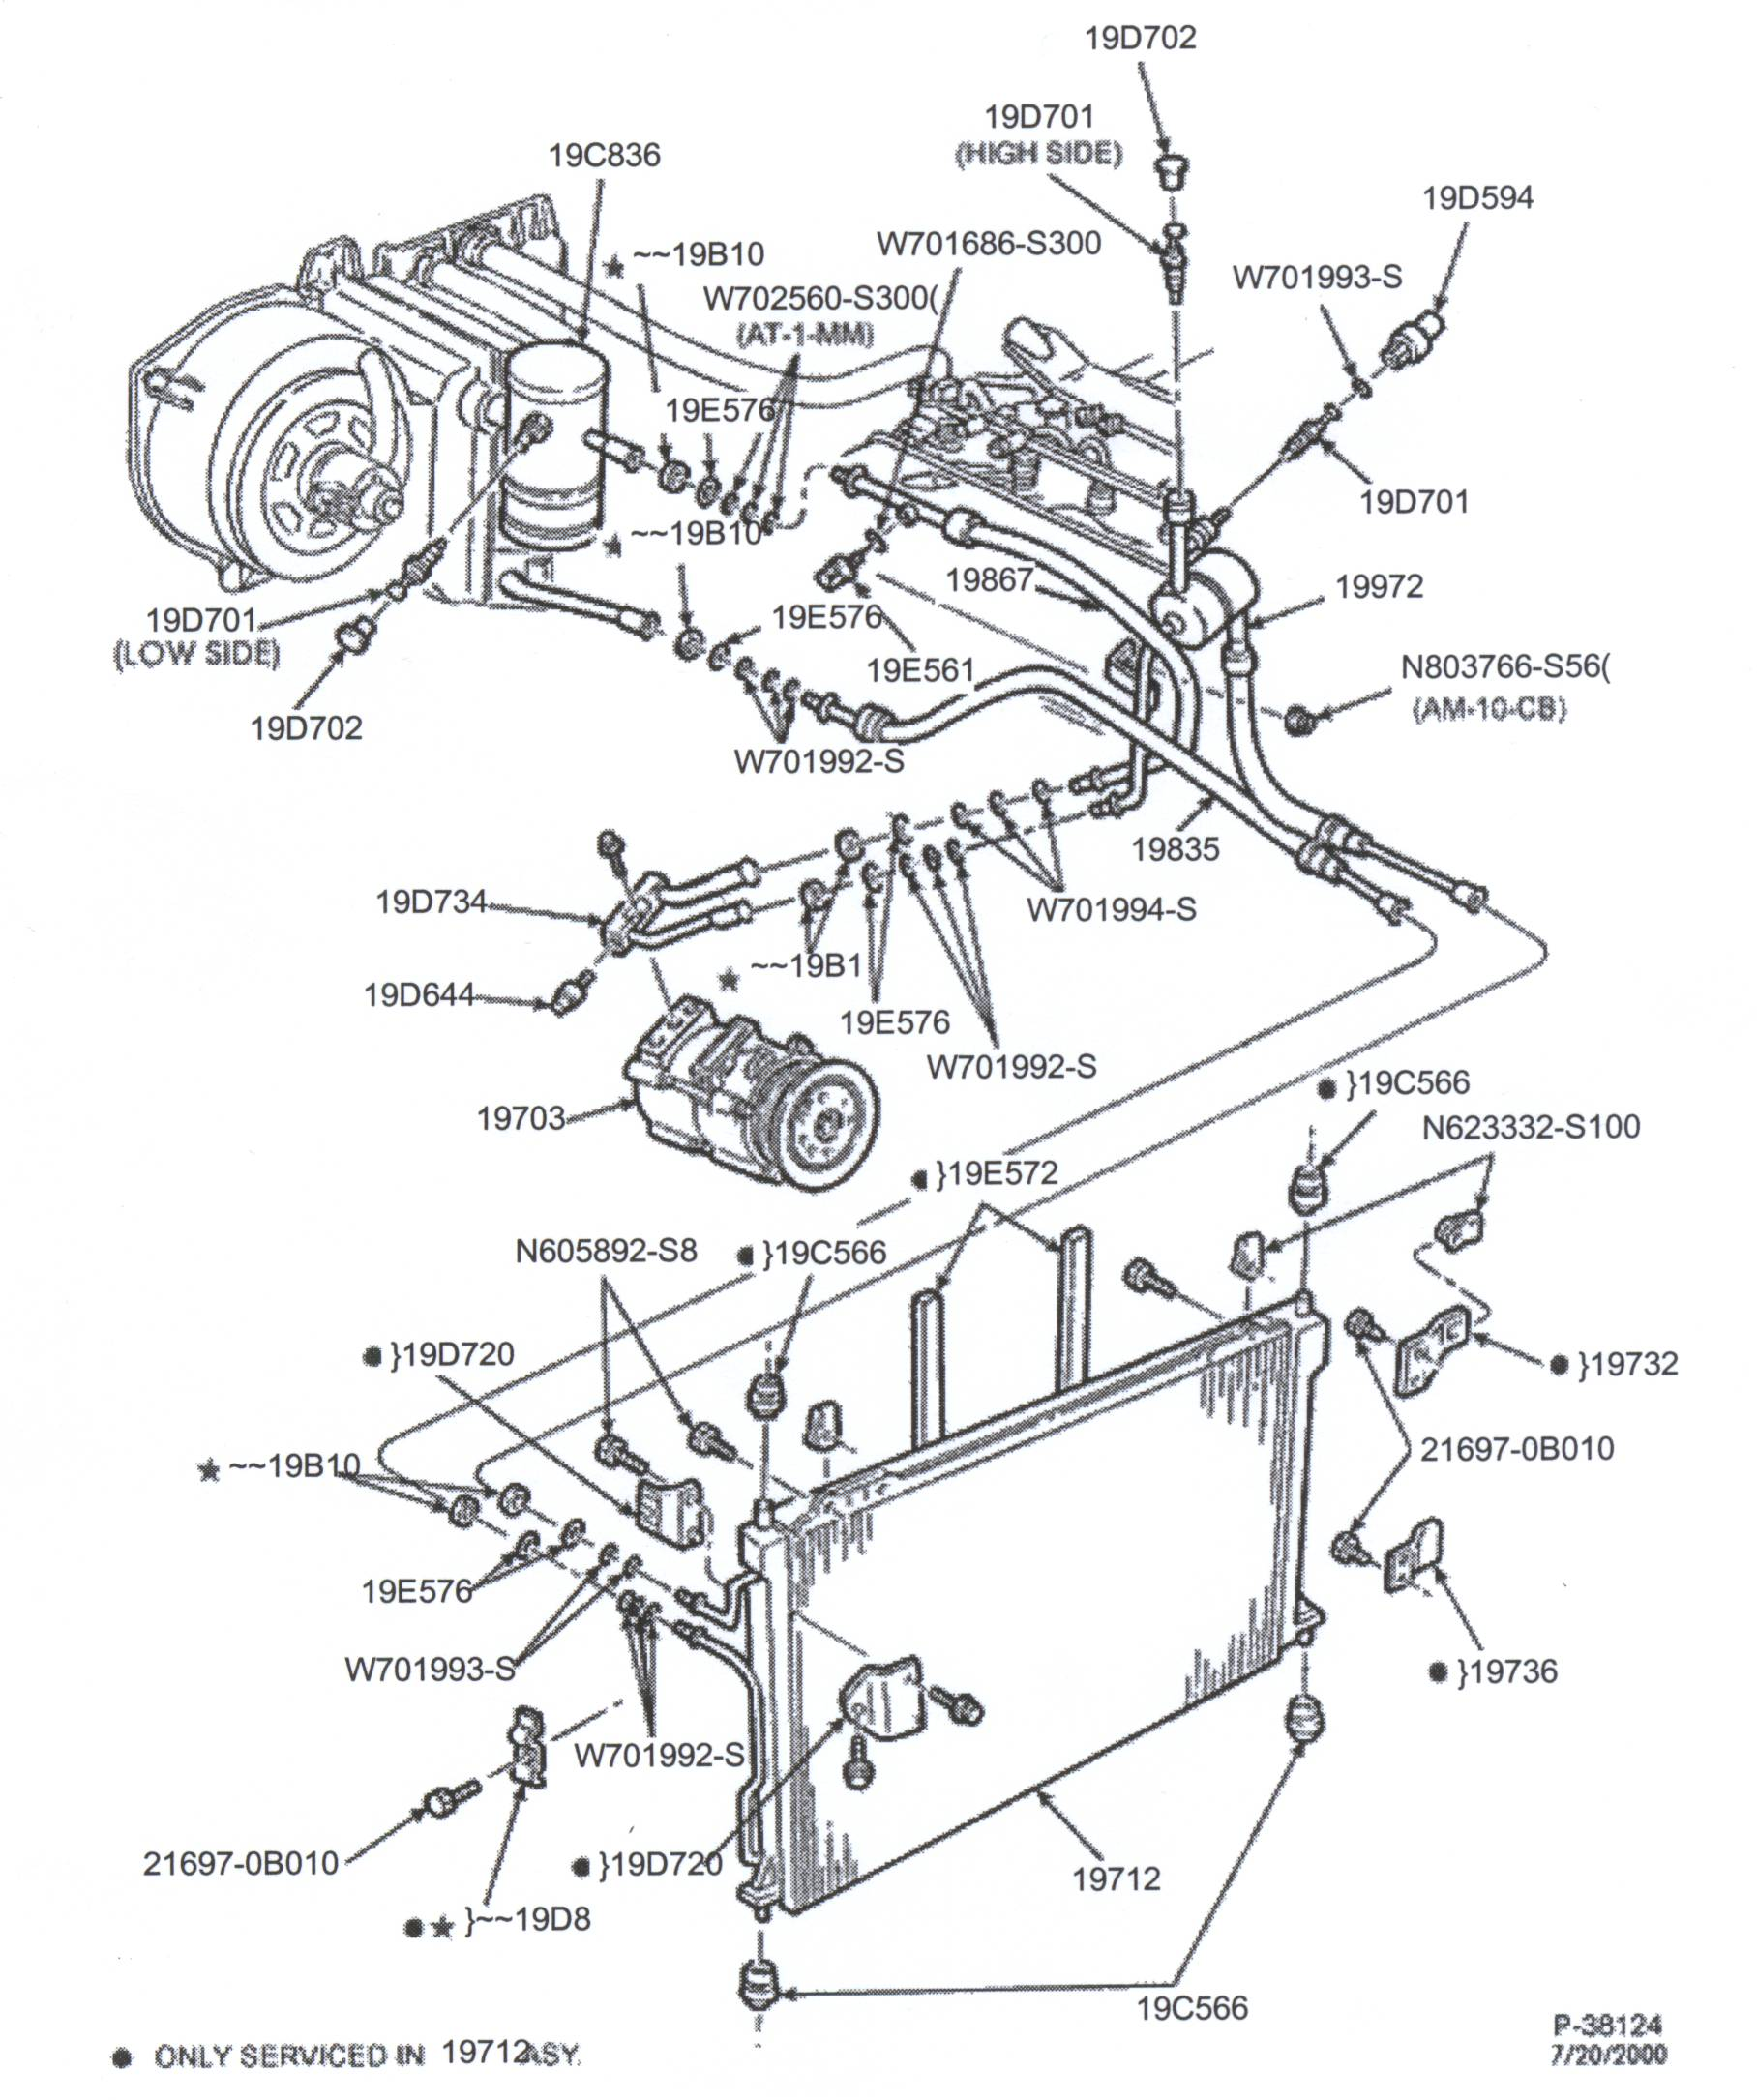 2004 Ford Escape Vacuum Hose Diagram. Ford. Auto Wiring